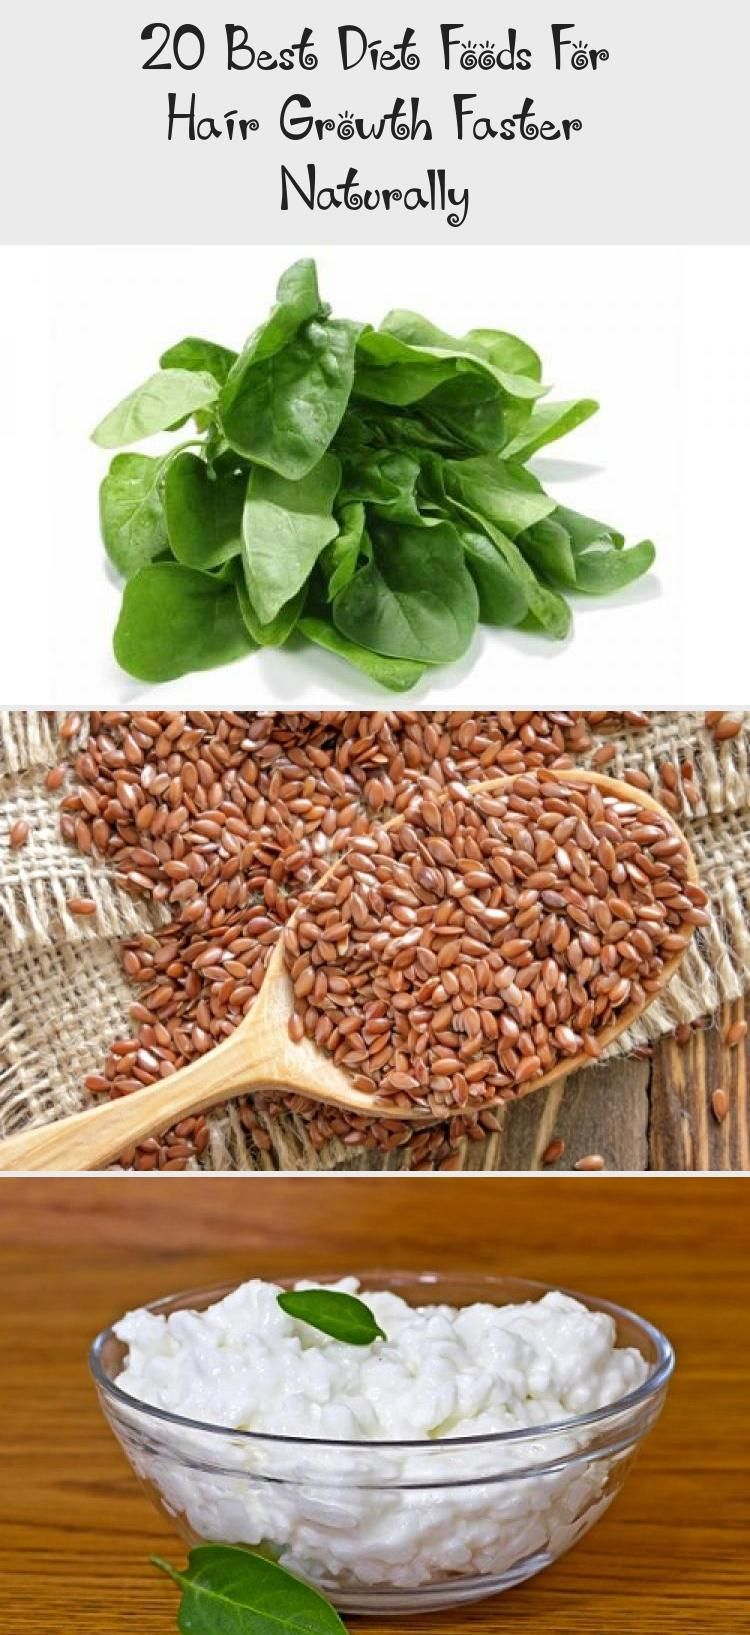 20 Best Diet Foods For Hair Growth Faster Naturally.